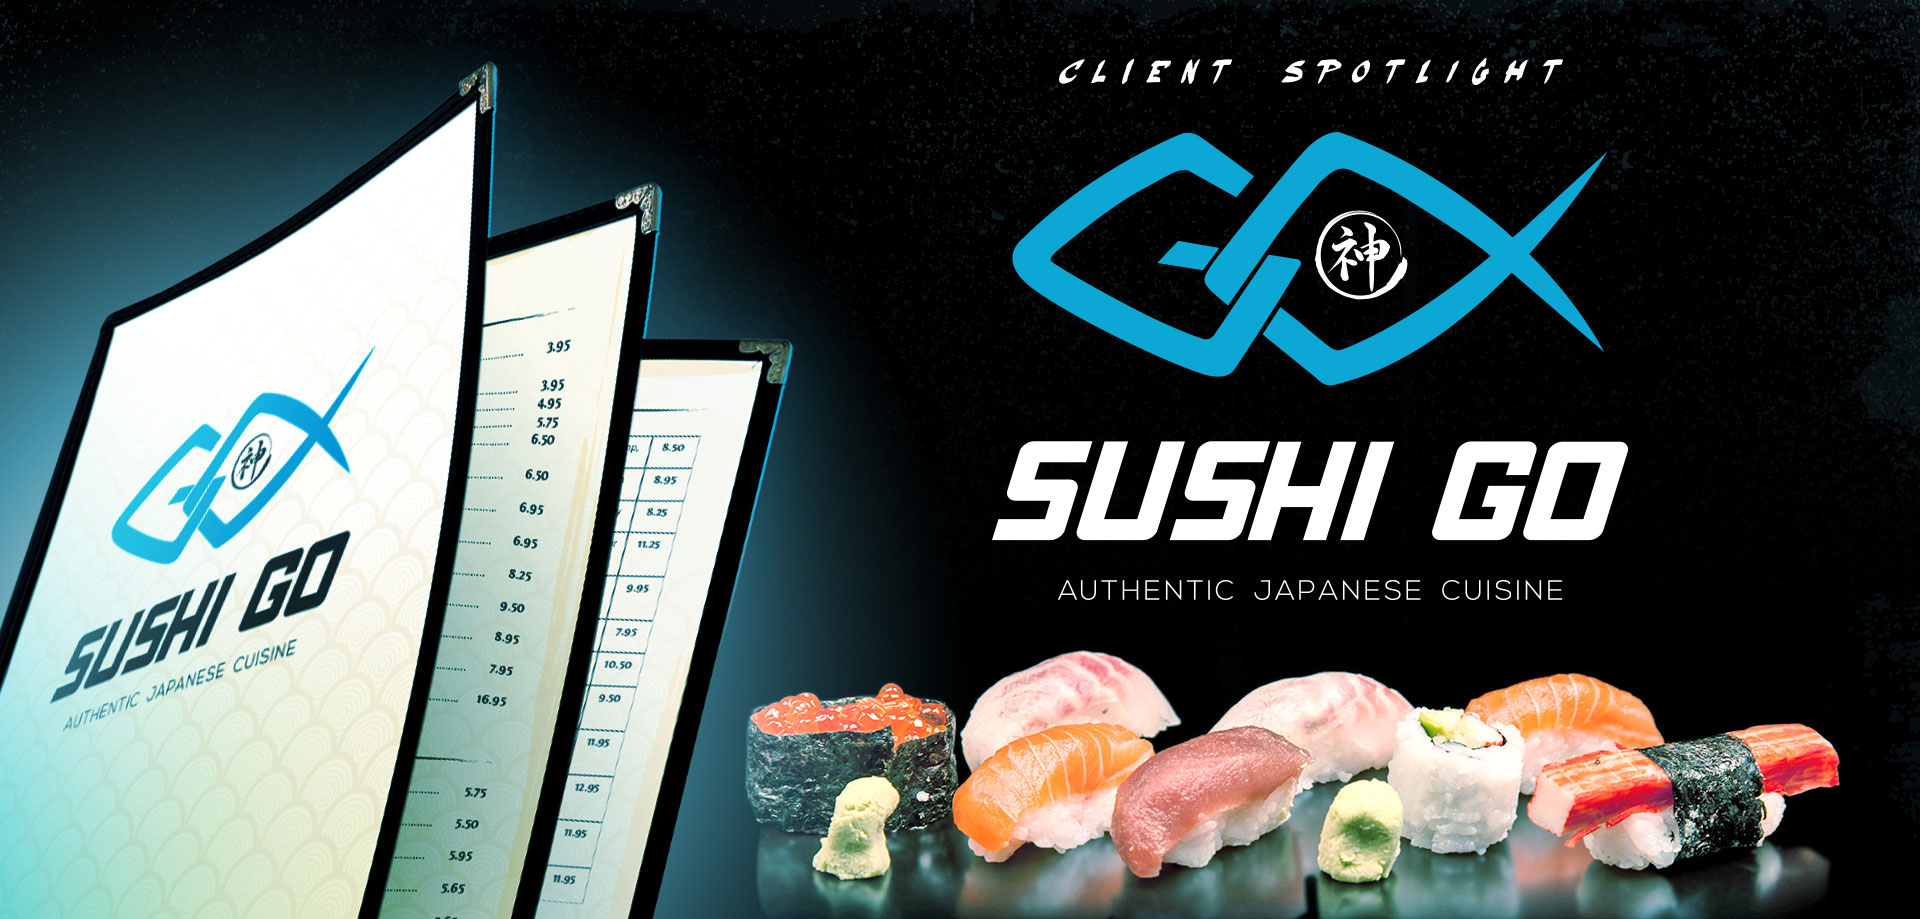 Sushi Go: Building a Brand in Greenville